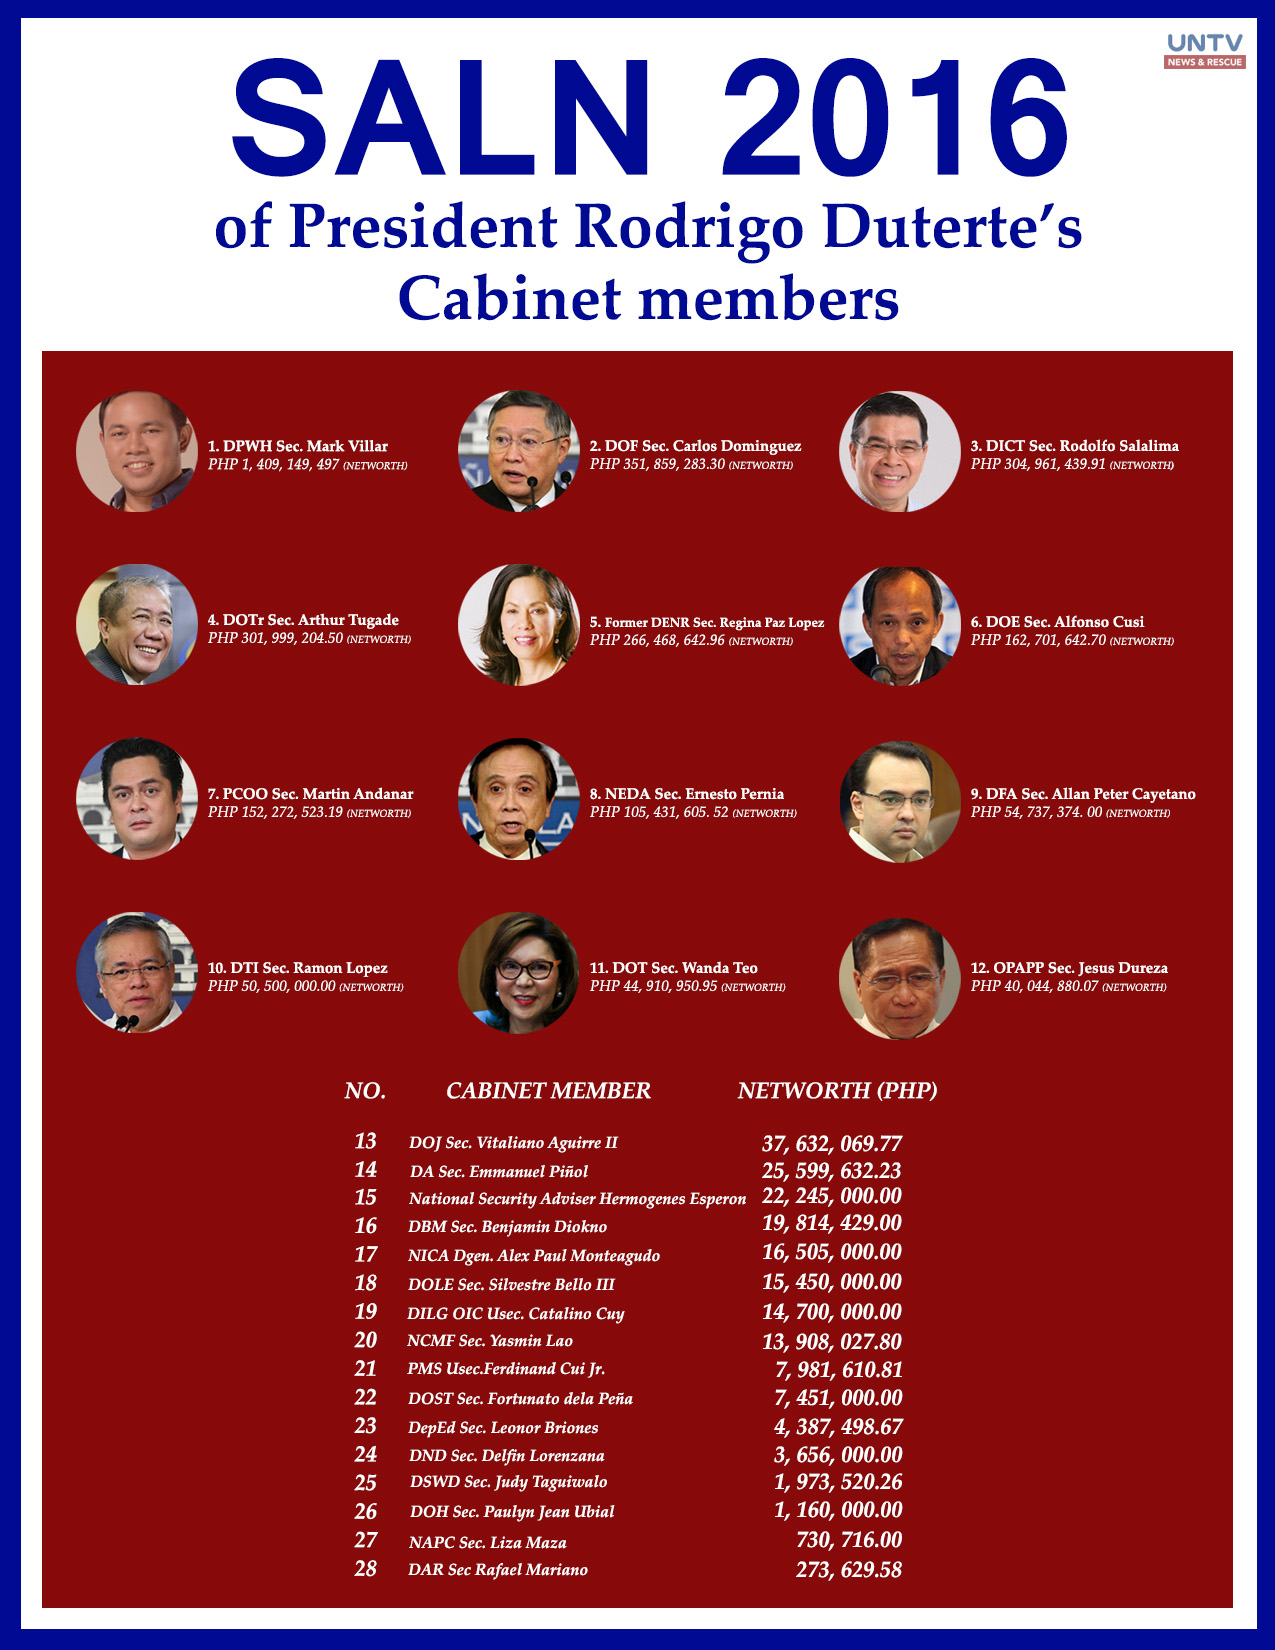 Villar is richest member of Duterte Cabinet - UNTV News | UNTV News